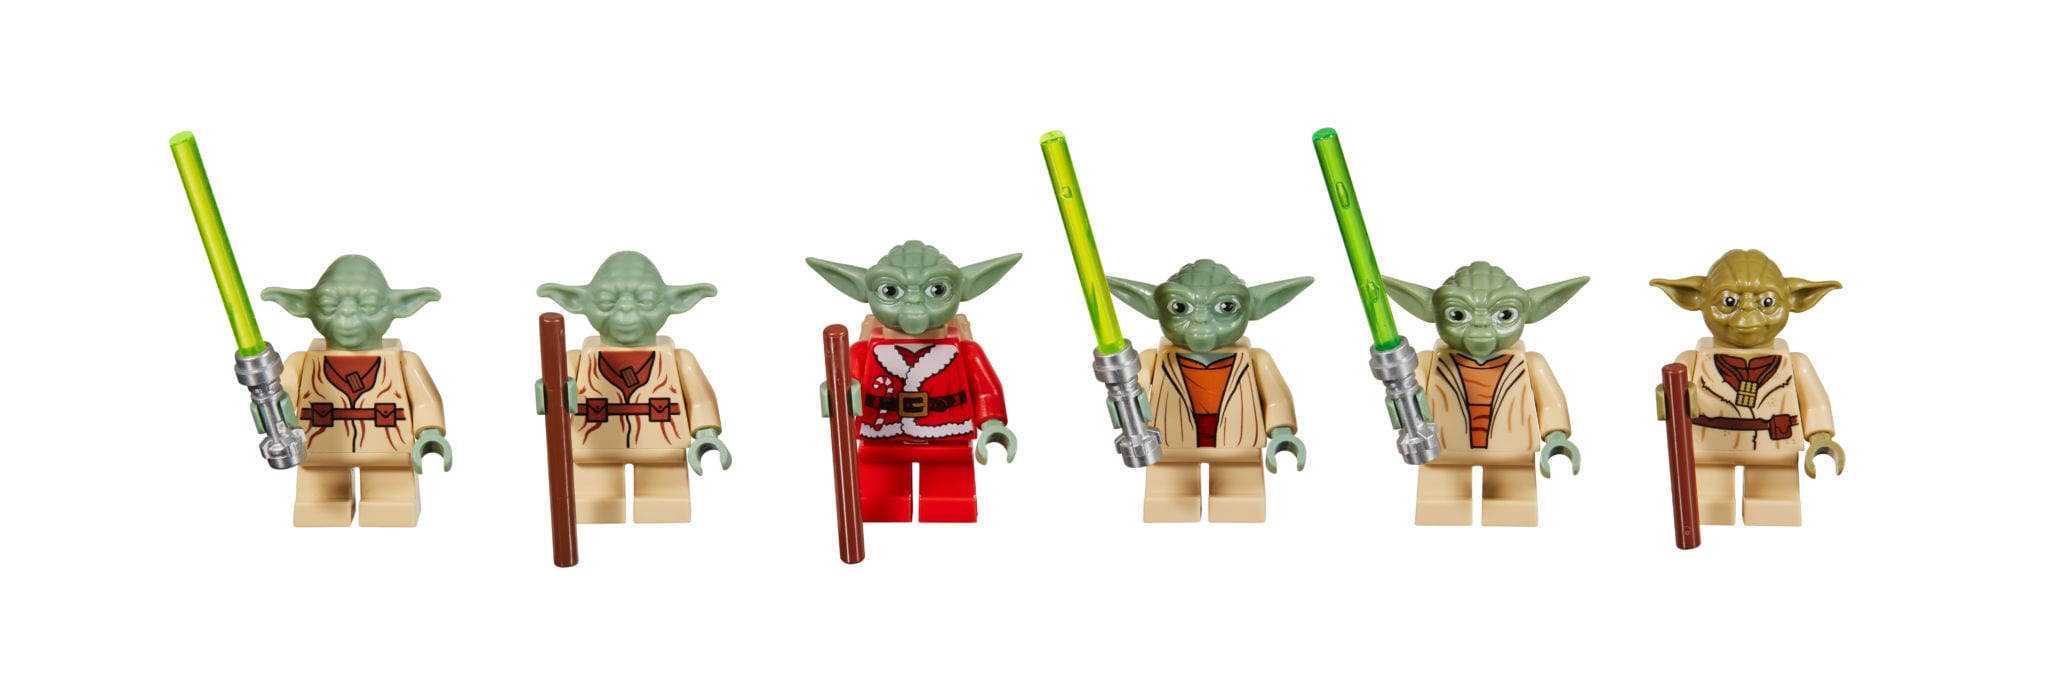 LEGO_Idea_House_Archive_7103_4502_7958_7964_75002_75208_Yoda_2002-2018